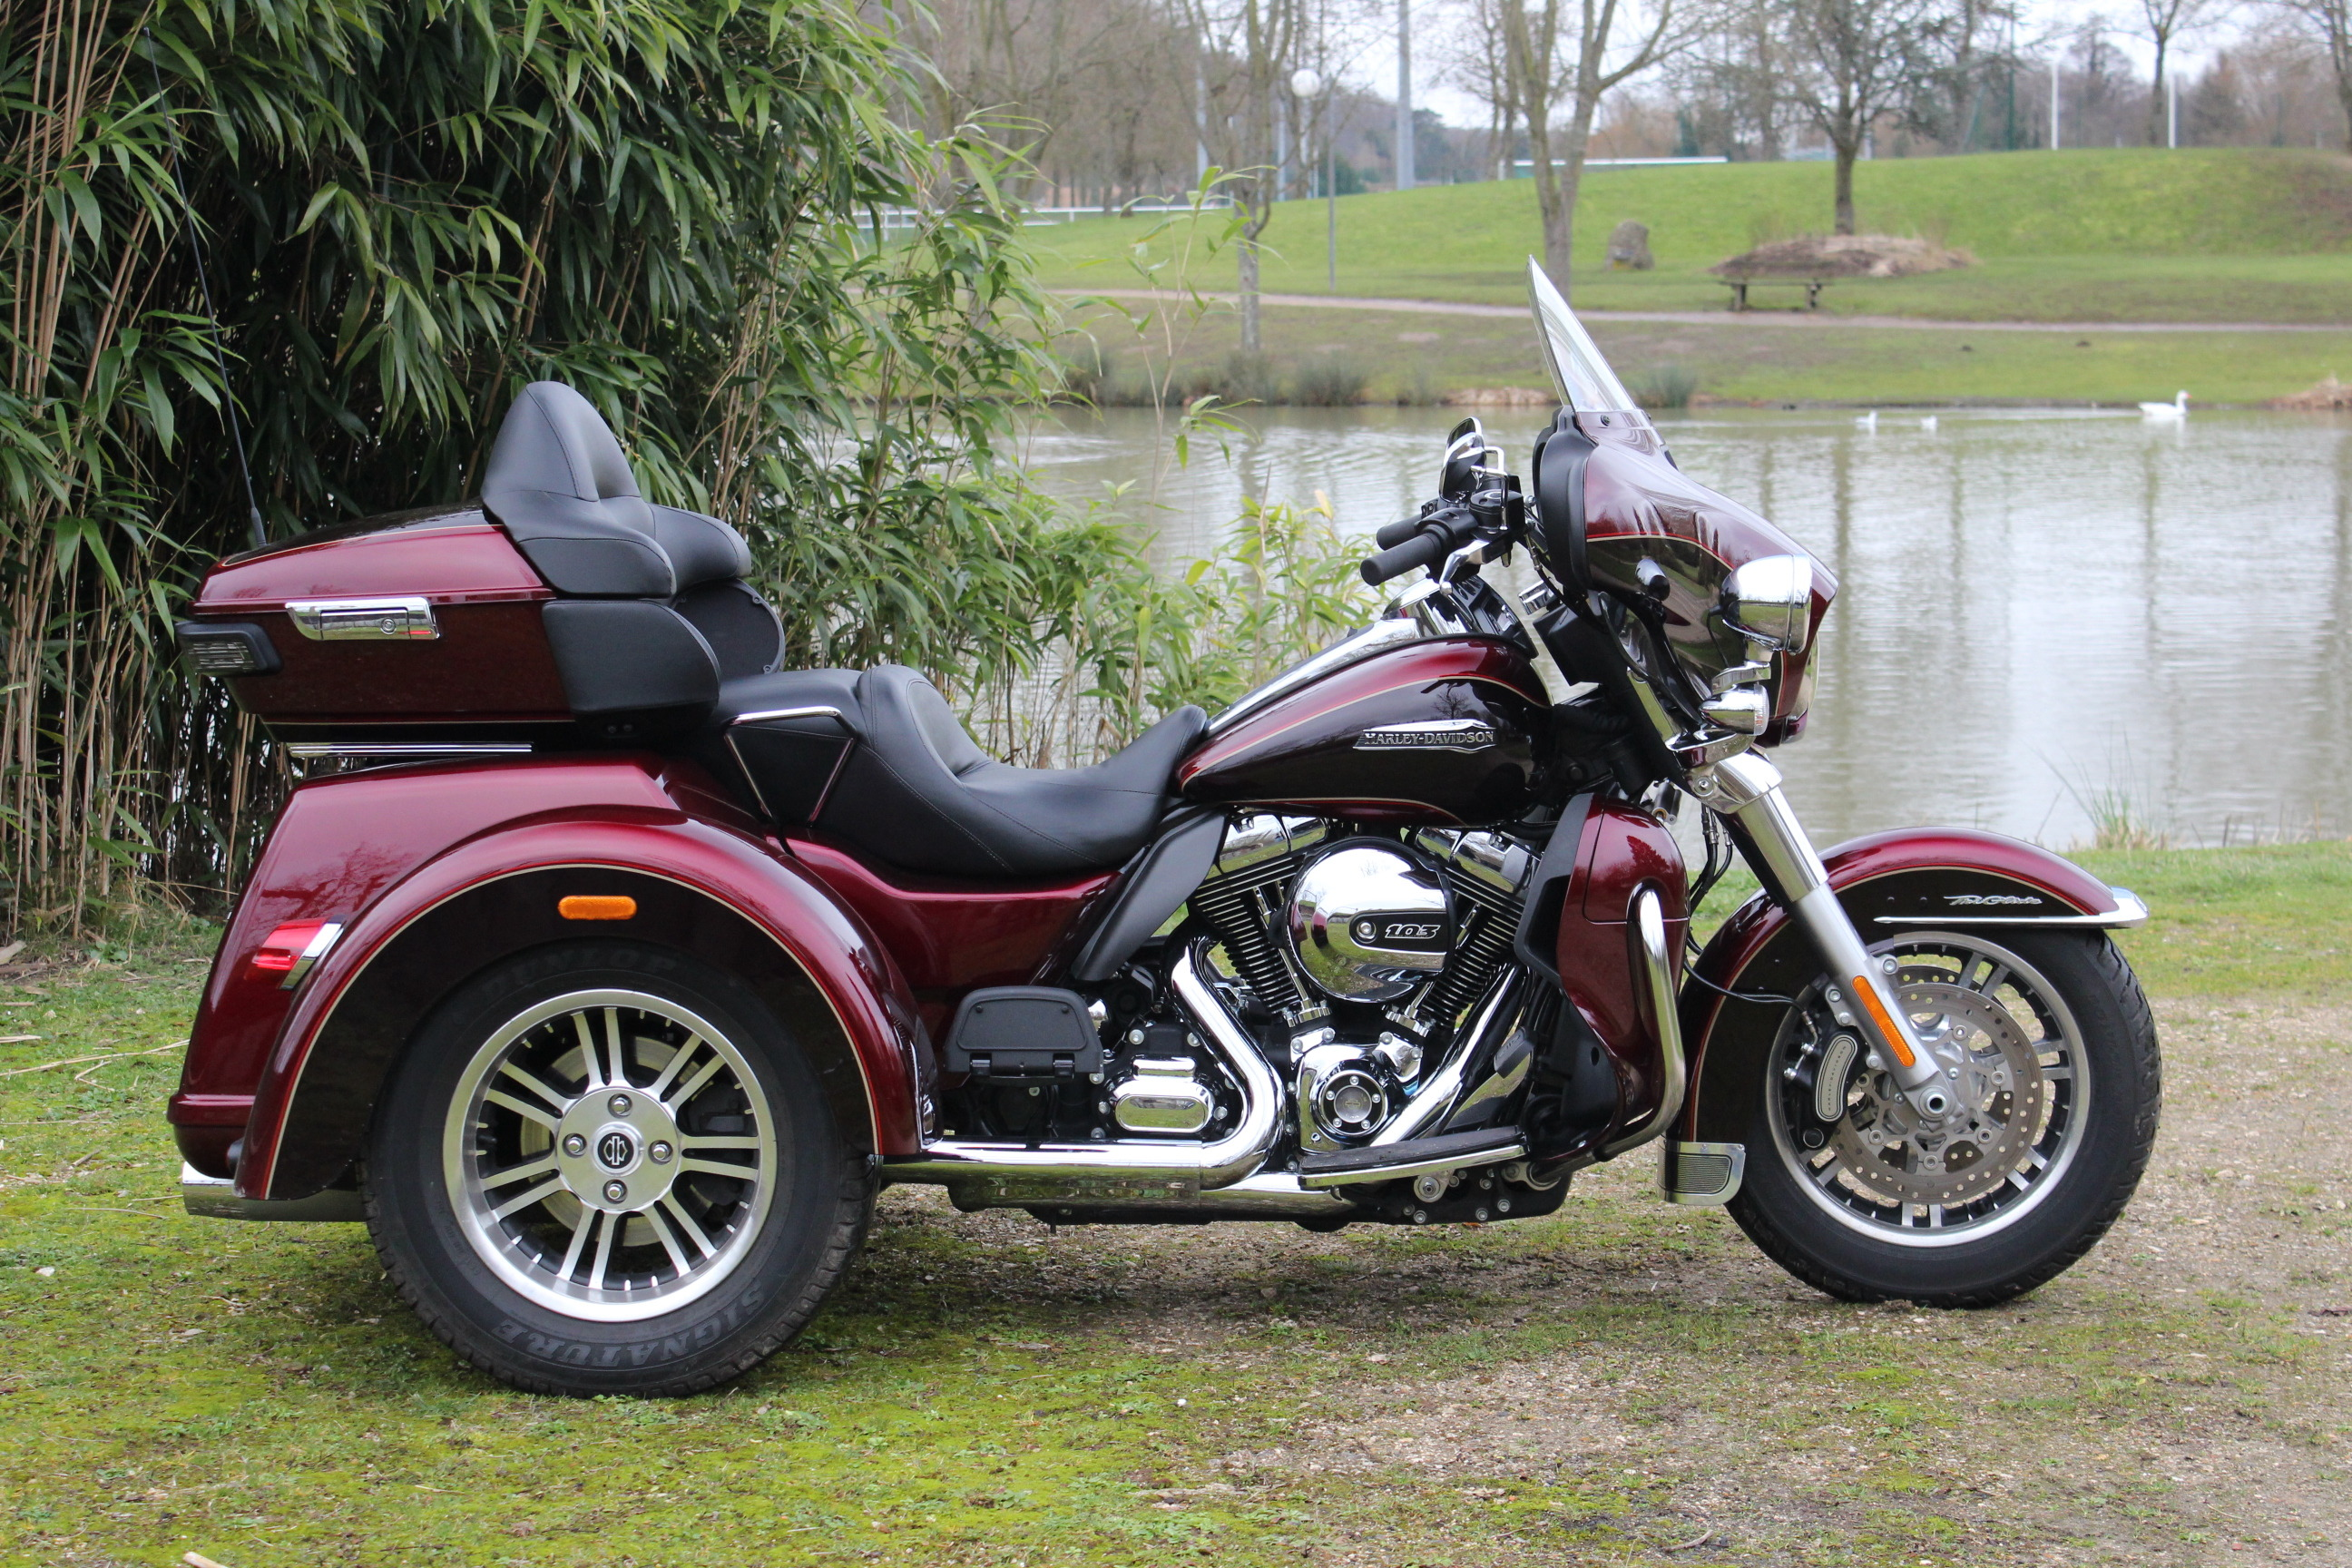 essai vid o harley davidson triglide quand harley rime avec permis b. Black Bedroom Furniture Sets. Home Design Ideas